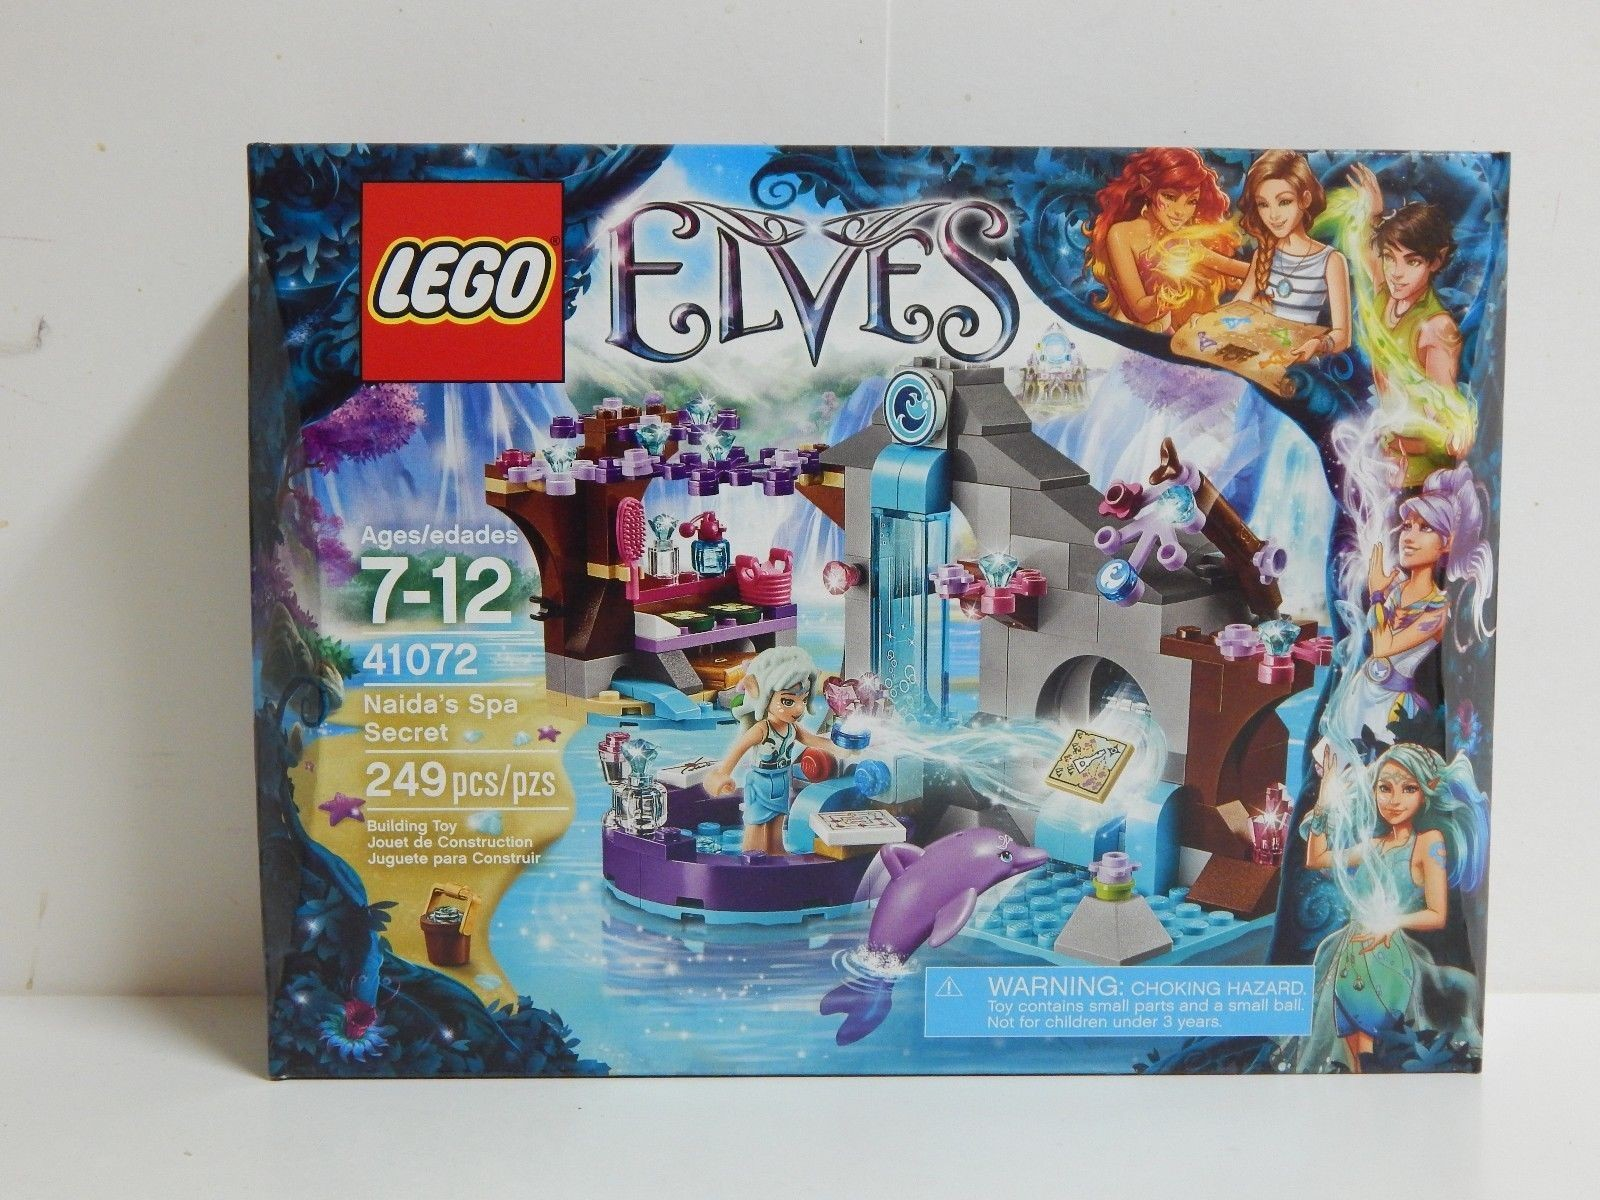 Lego March Calendar Actual Lego Elves Naida S Spa Secret Factory Sealed Retired sold Out Of Lego March Calendar Más Arriba-a-fecha Beautiful Lego Amazon Mike Doyle Books